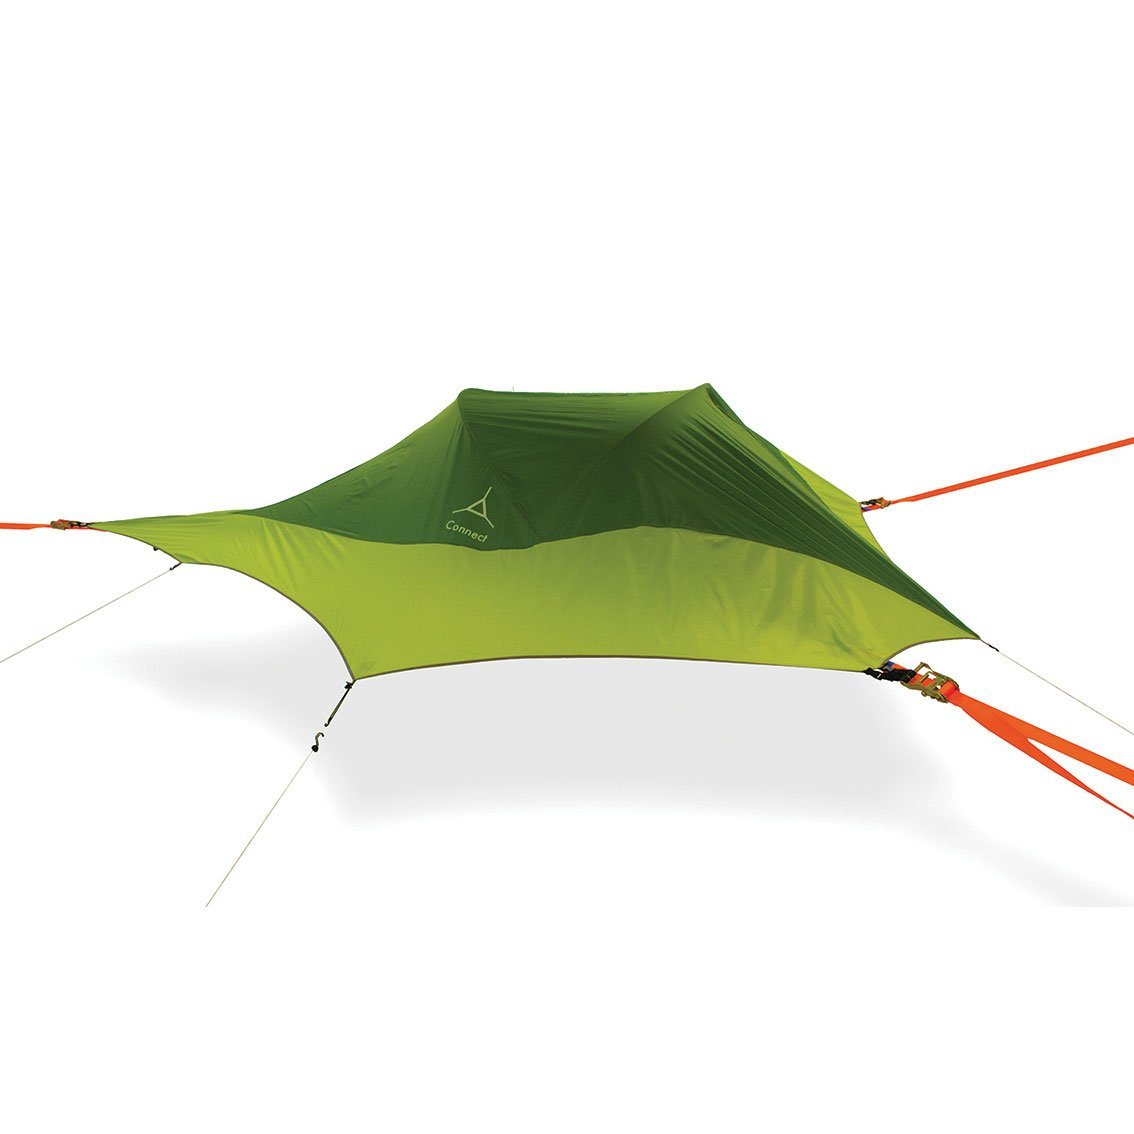 Tentsile | Connect Tree Tent | 2 Person Suspended Hammock Tent - Rainforest Green